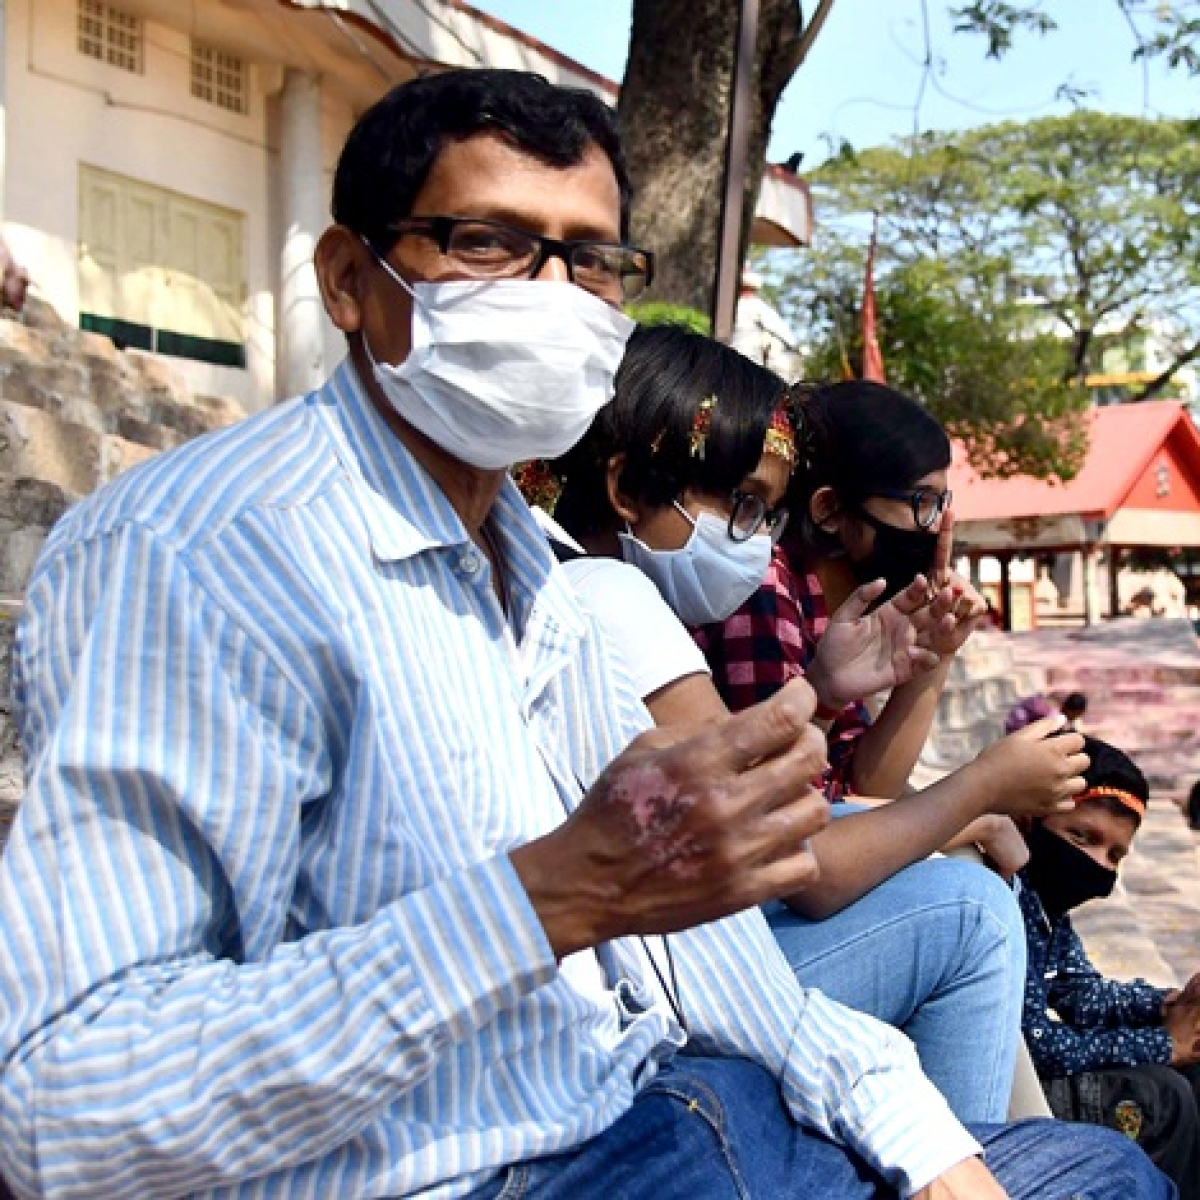 Mumbai: BMC hikes spitting fine from Rs 200 to Rs 1,000 amid coronavirus outbreak